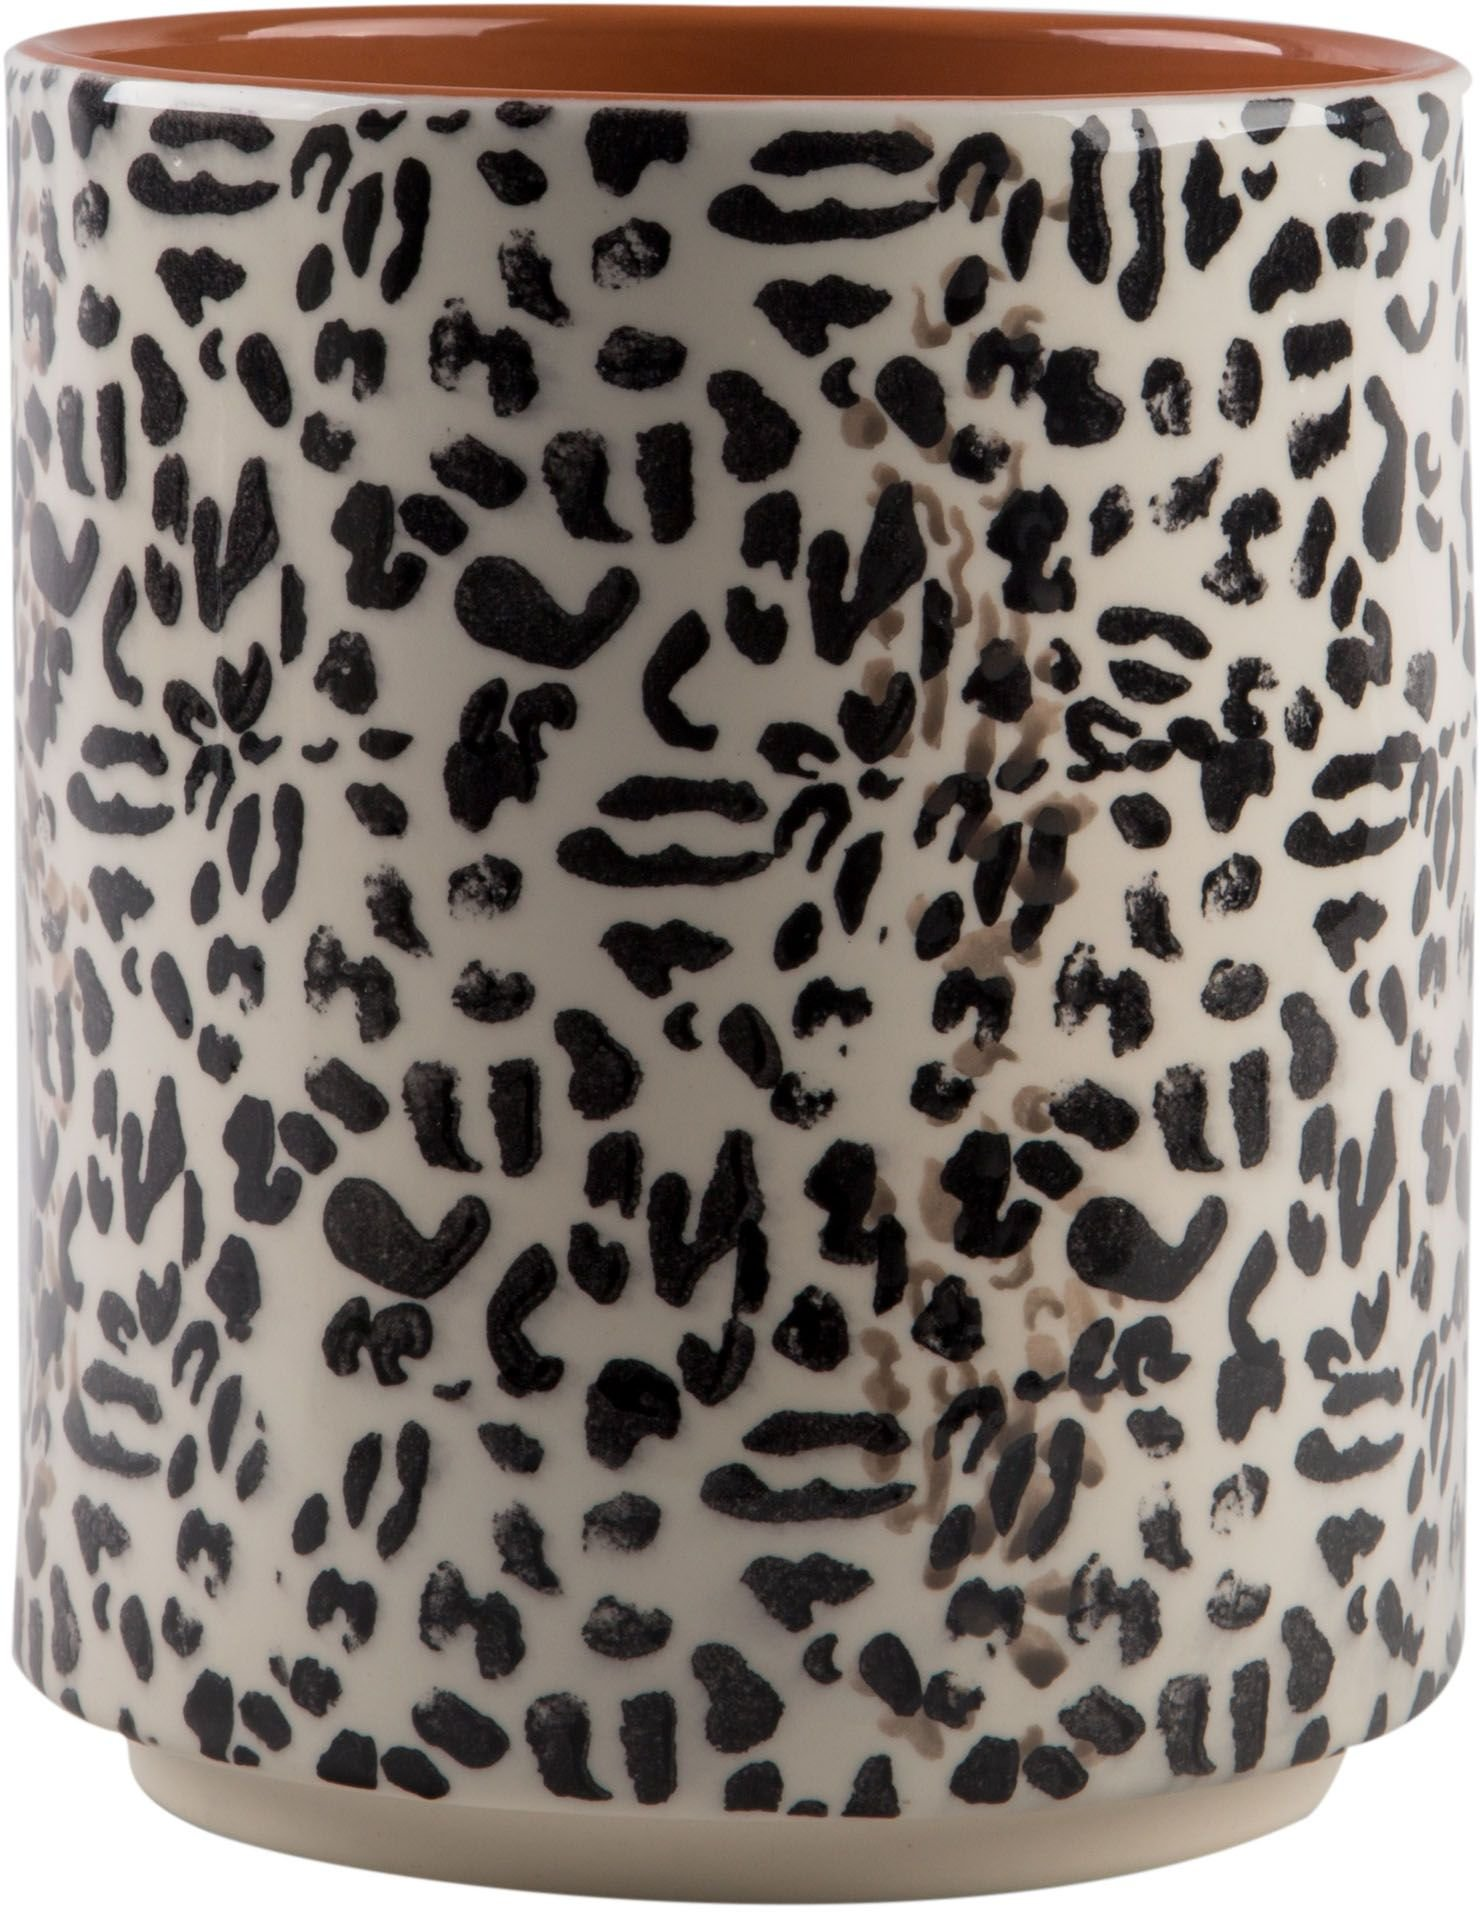 Modern Utensil Container- Utensil Country Crock Black and White animal print